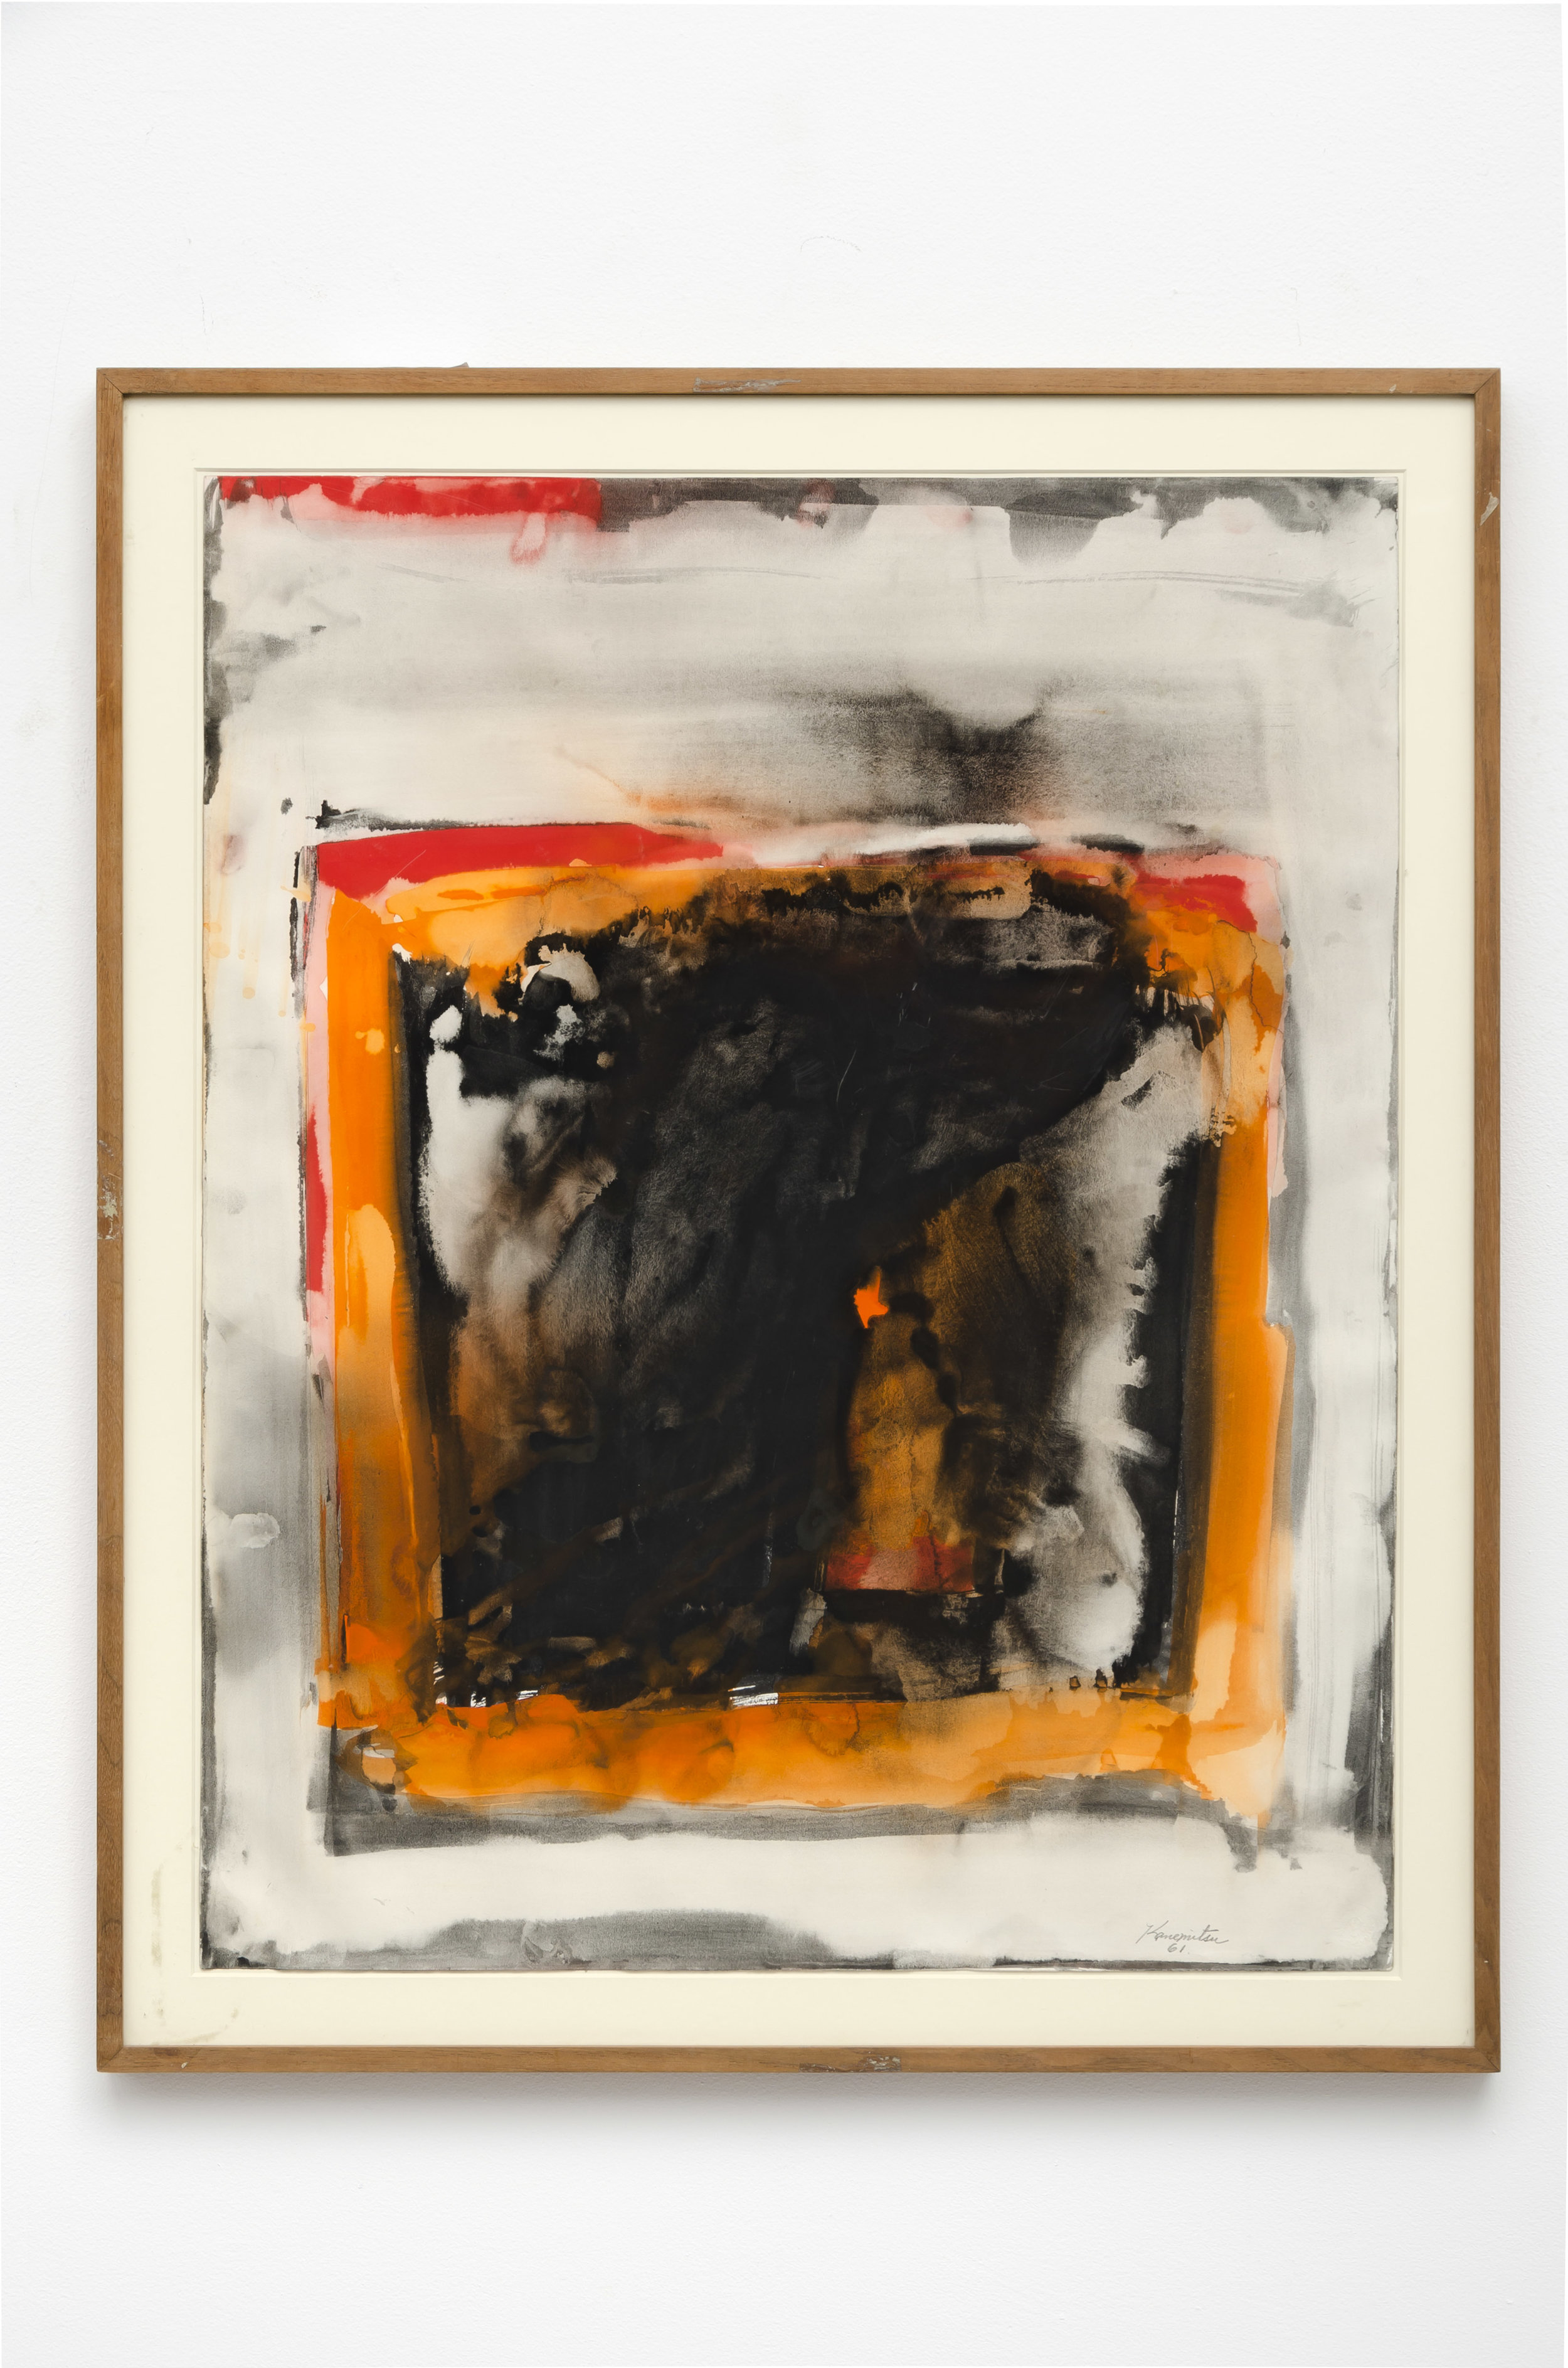 Untitled , 1961 watercolor on paper 29 x 23 inches; 73.7 x 58.4 centimeters